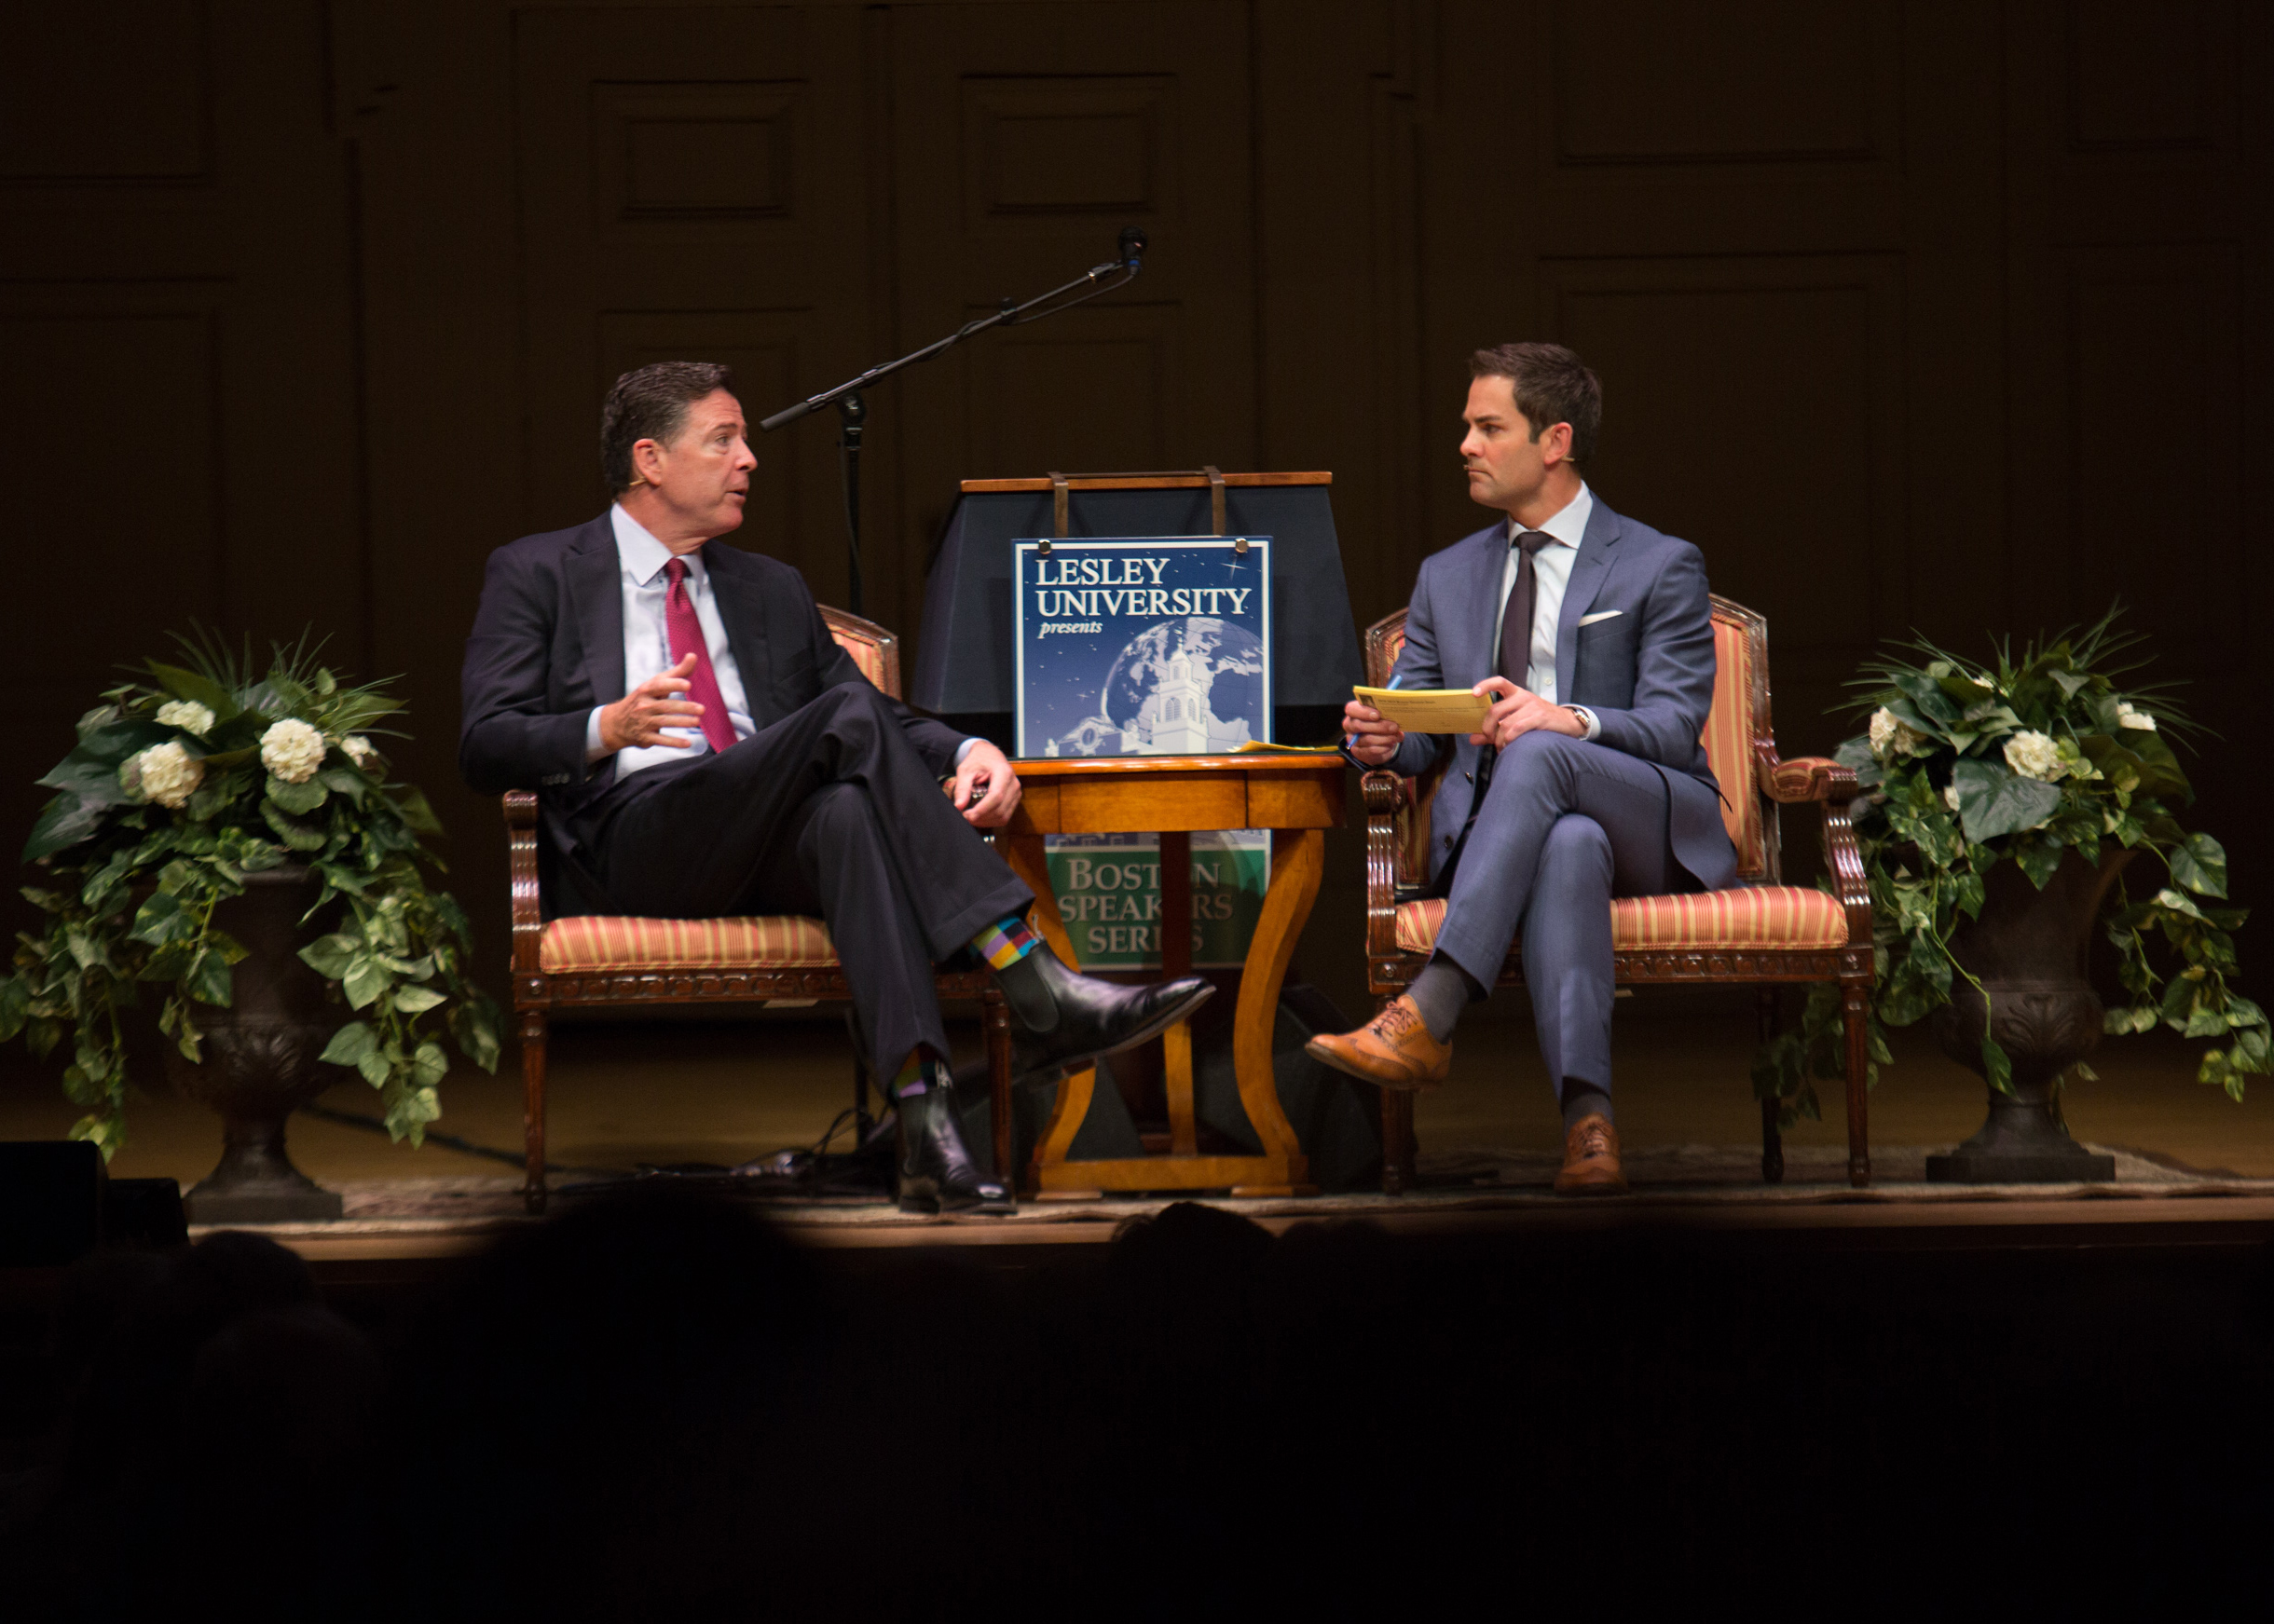 James Comey and Jared Bowen seats on the Symphony Hall stage